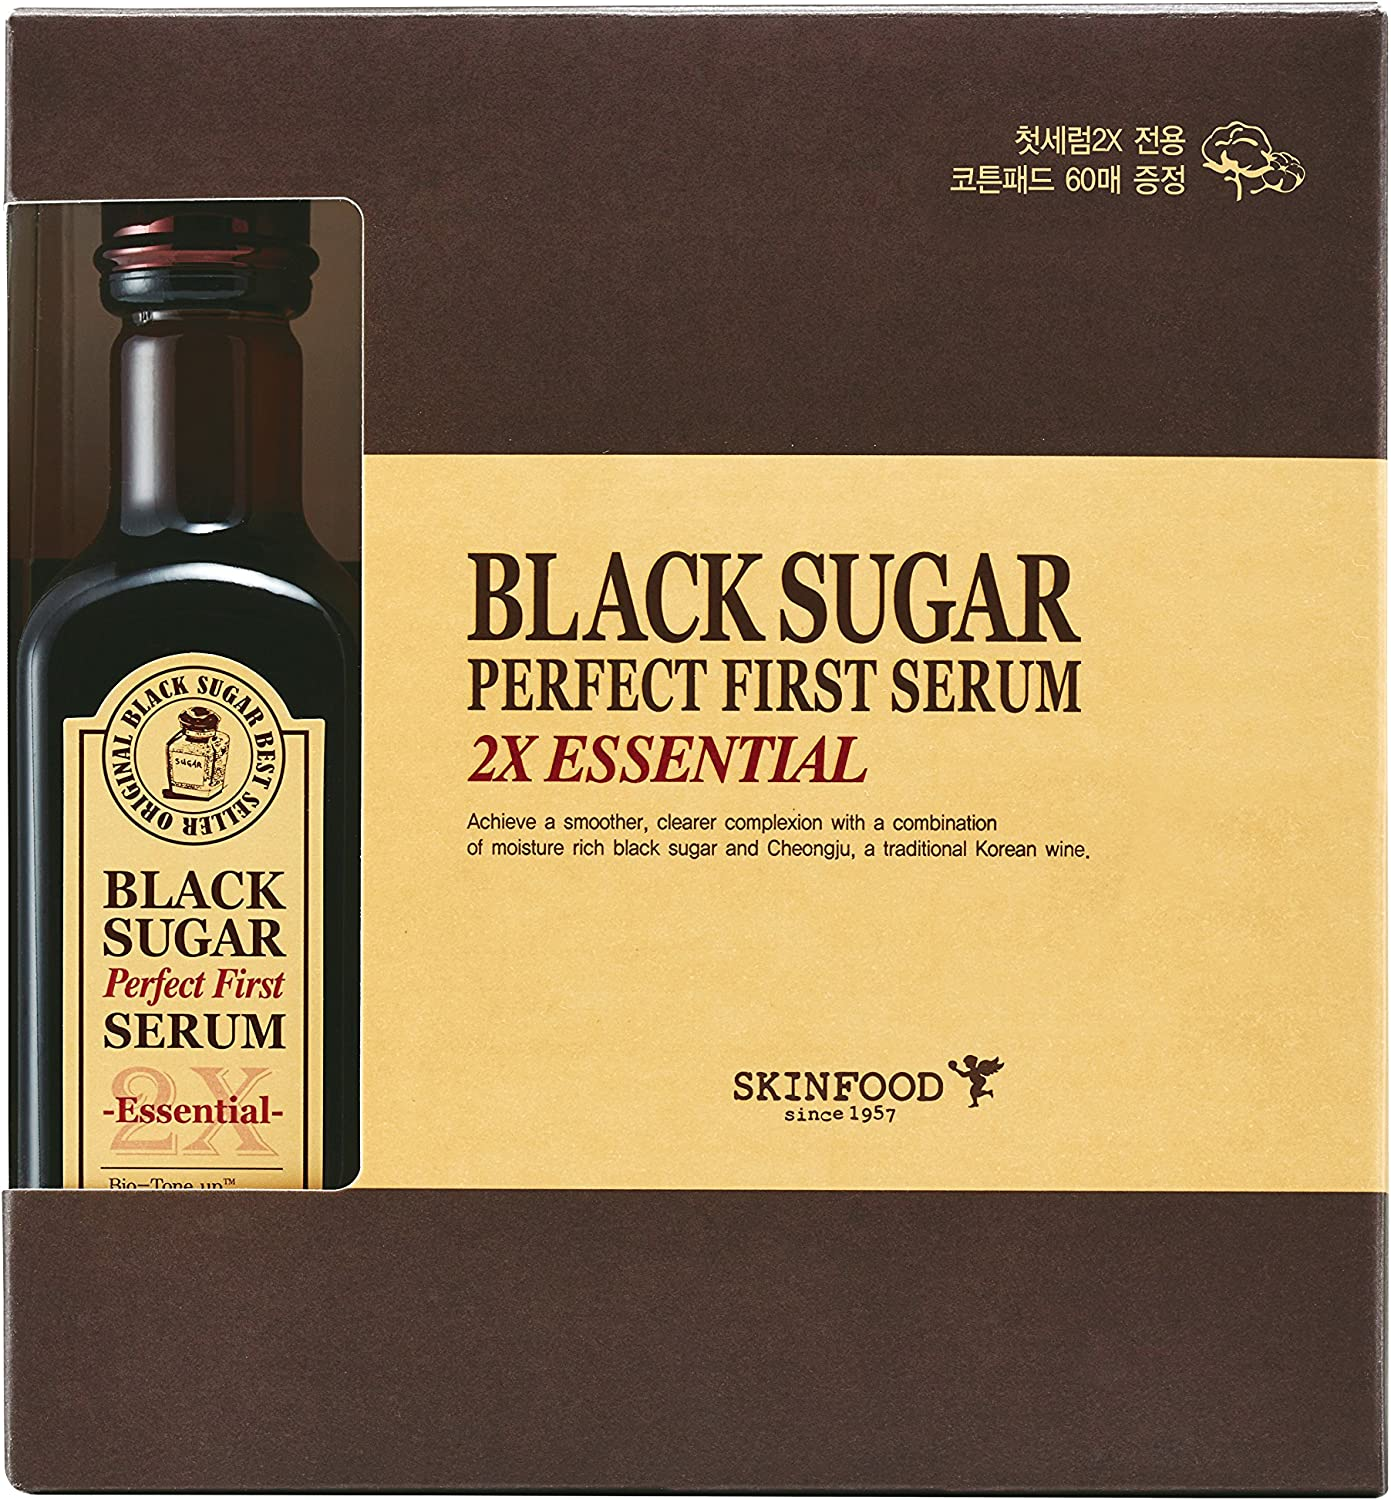 Skinfood Black Sugar Perfect First Serum 2x Essential (4.05fl.oz/120ml) with Cotton Pad 60 Sheets